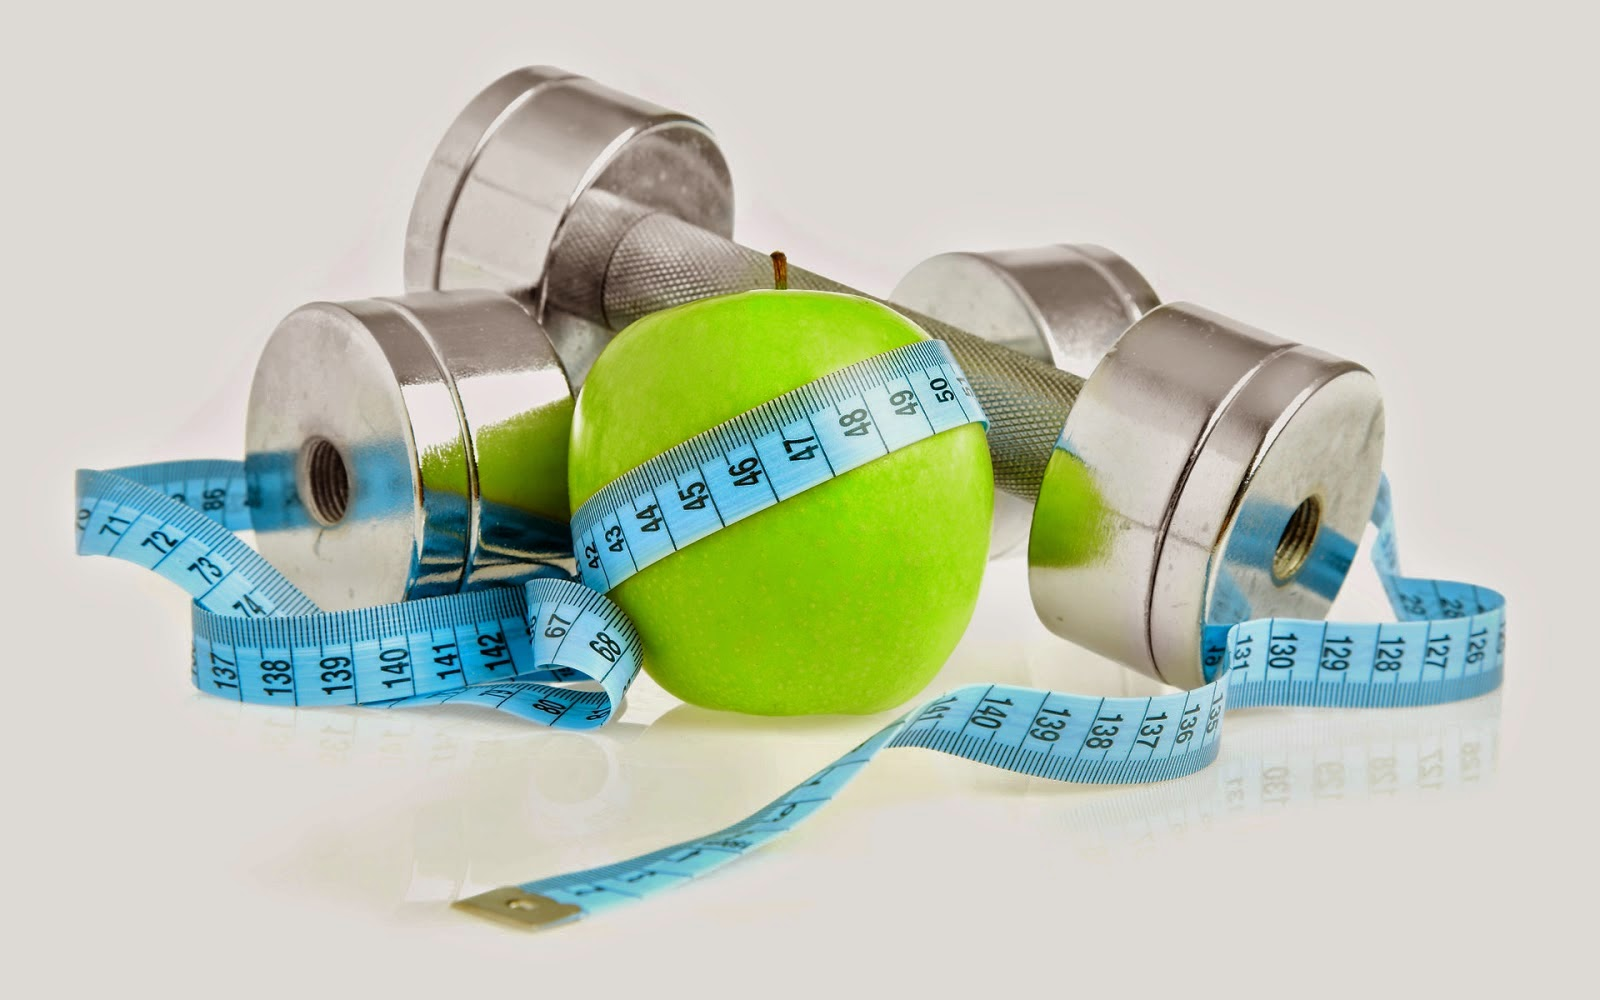 http://weightlossplume.blogspot.com/2014/10/the-factor-that-predicts-diet-success.html